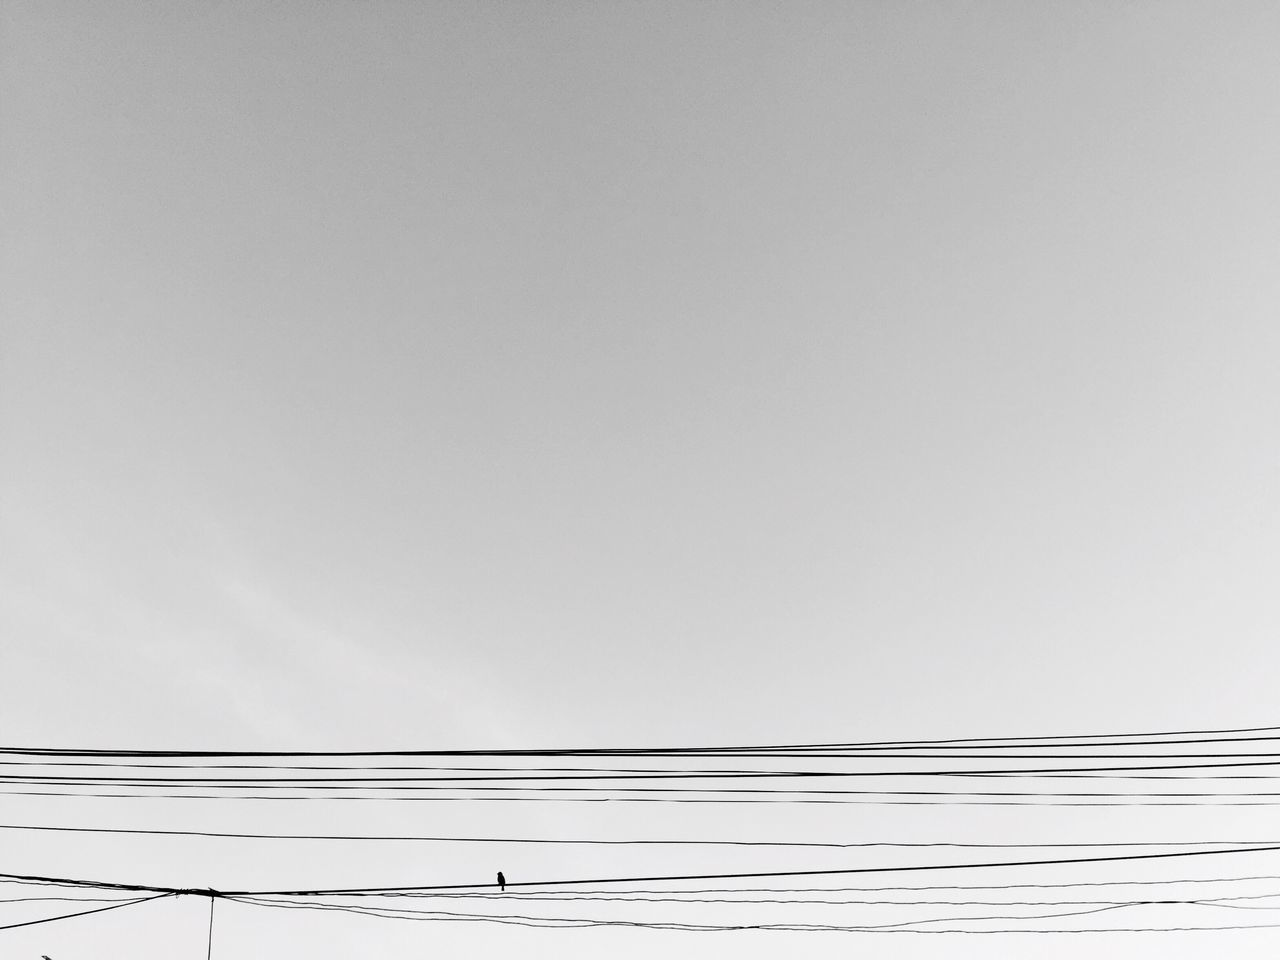 cable, copy space, connection, power supply, no people, power line, electricity, low angle view, complexity, technology, white background, day, outdoors, sky